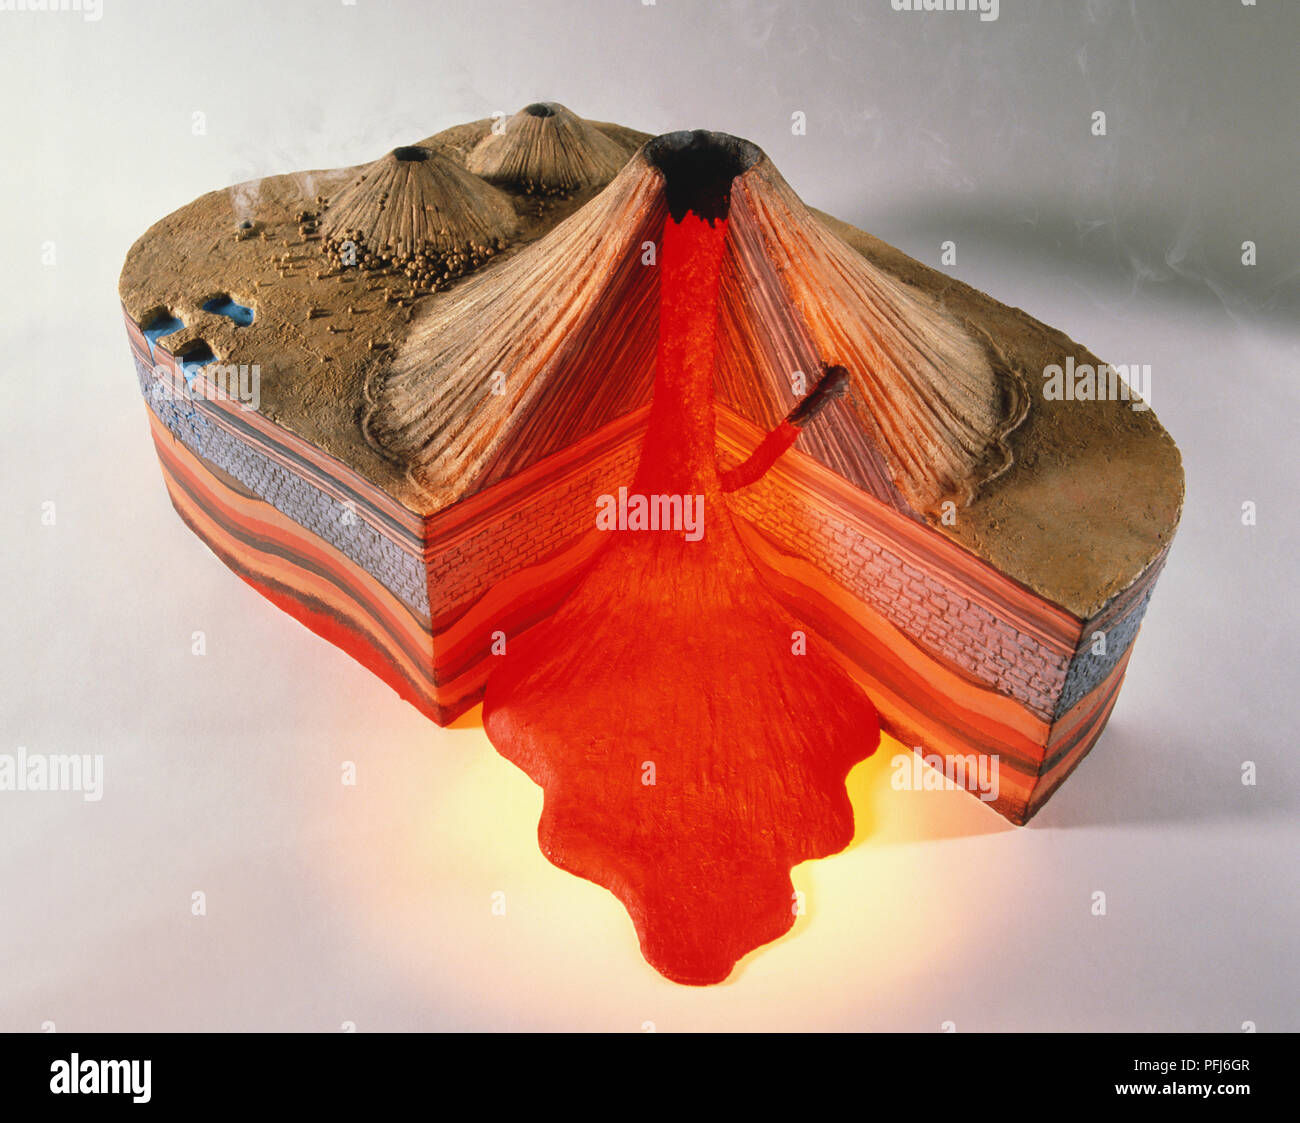 3d Model Of Erupting Volcano With Cross Section